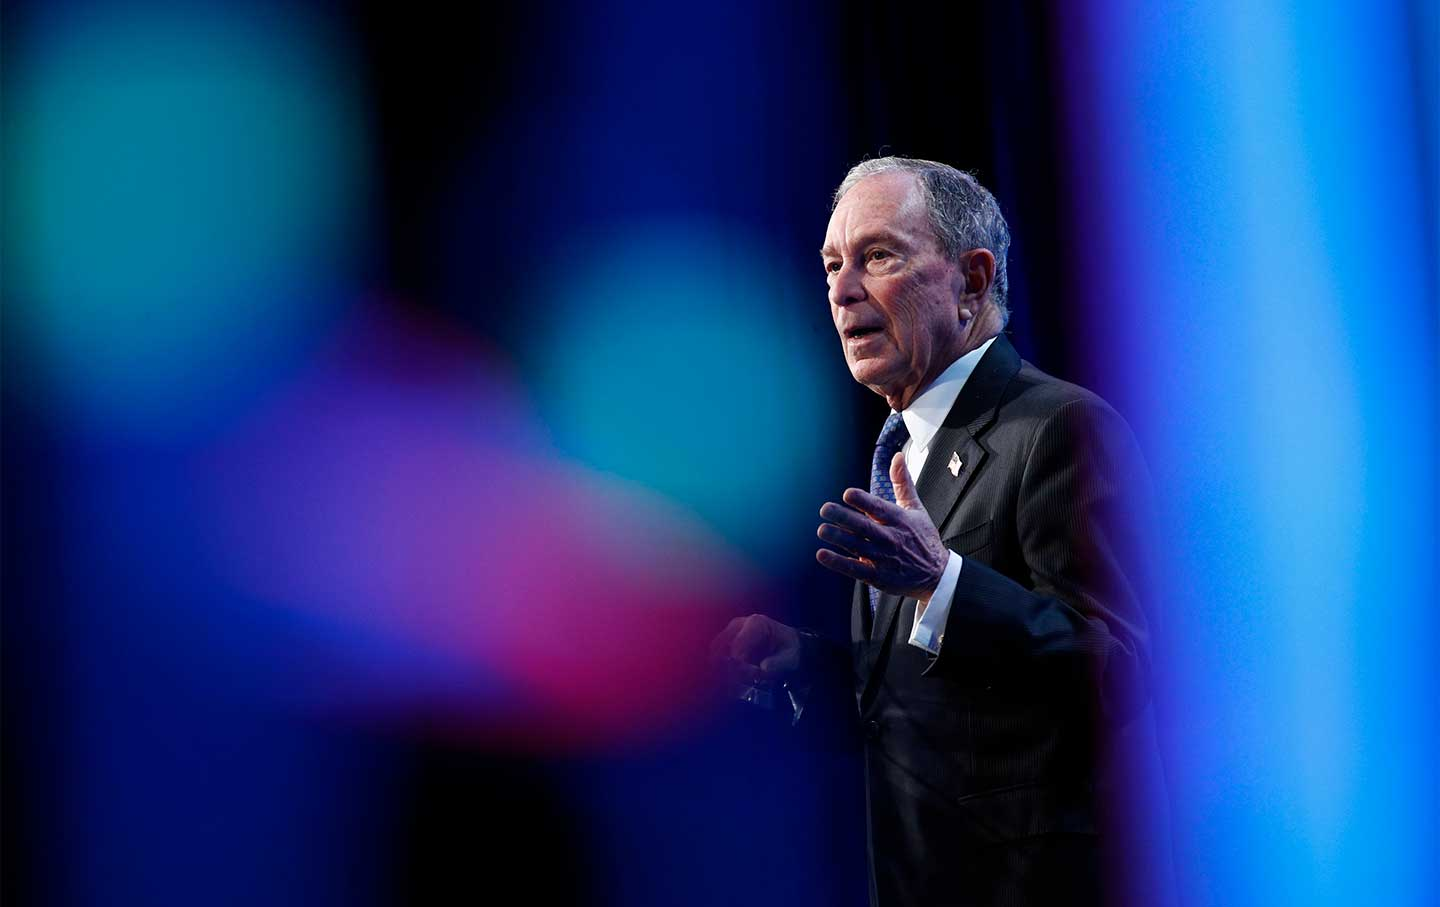 The DNC's Move to Accommodate Bloomberg Stirs Outrage in Iowa